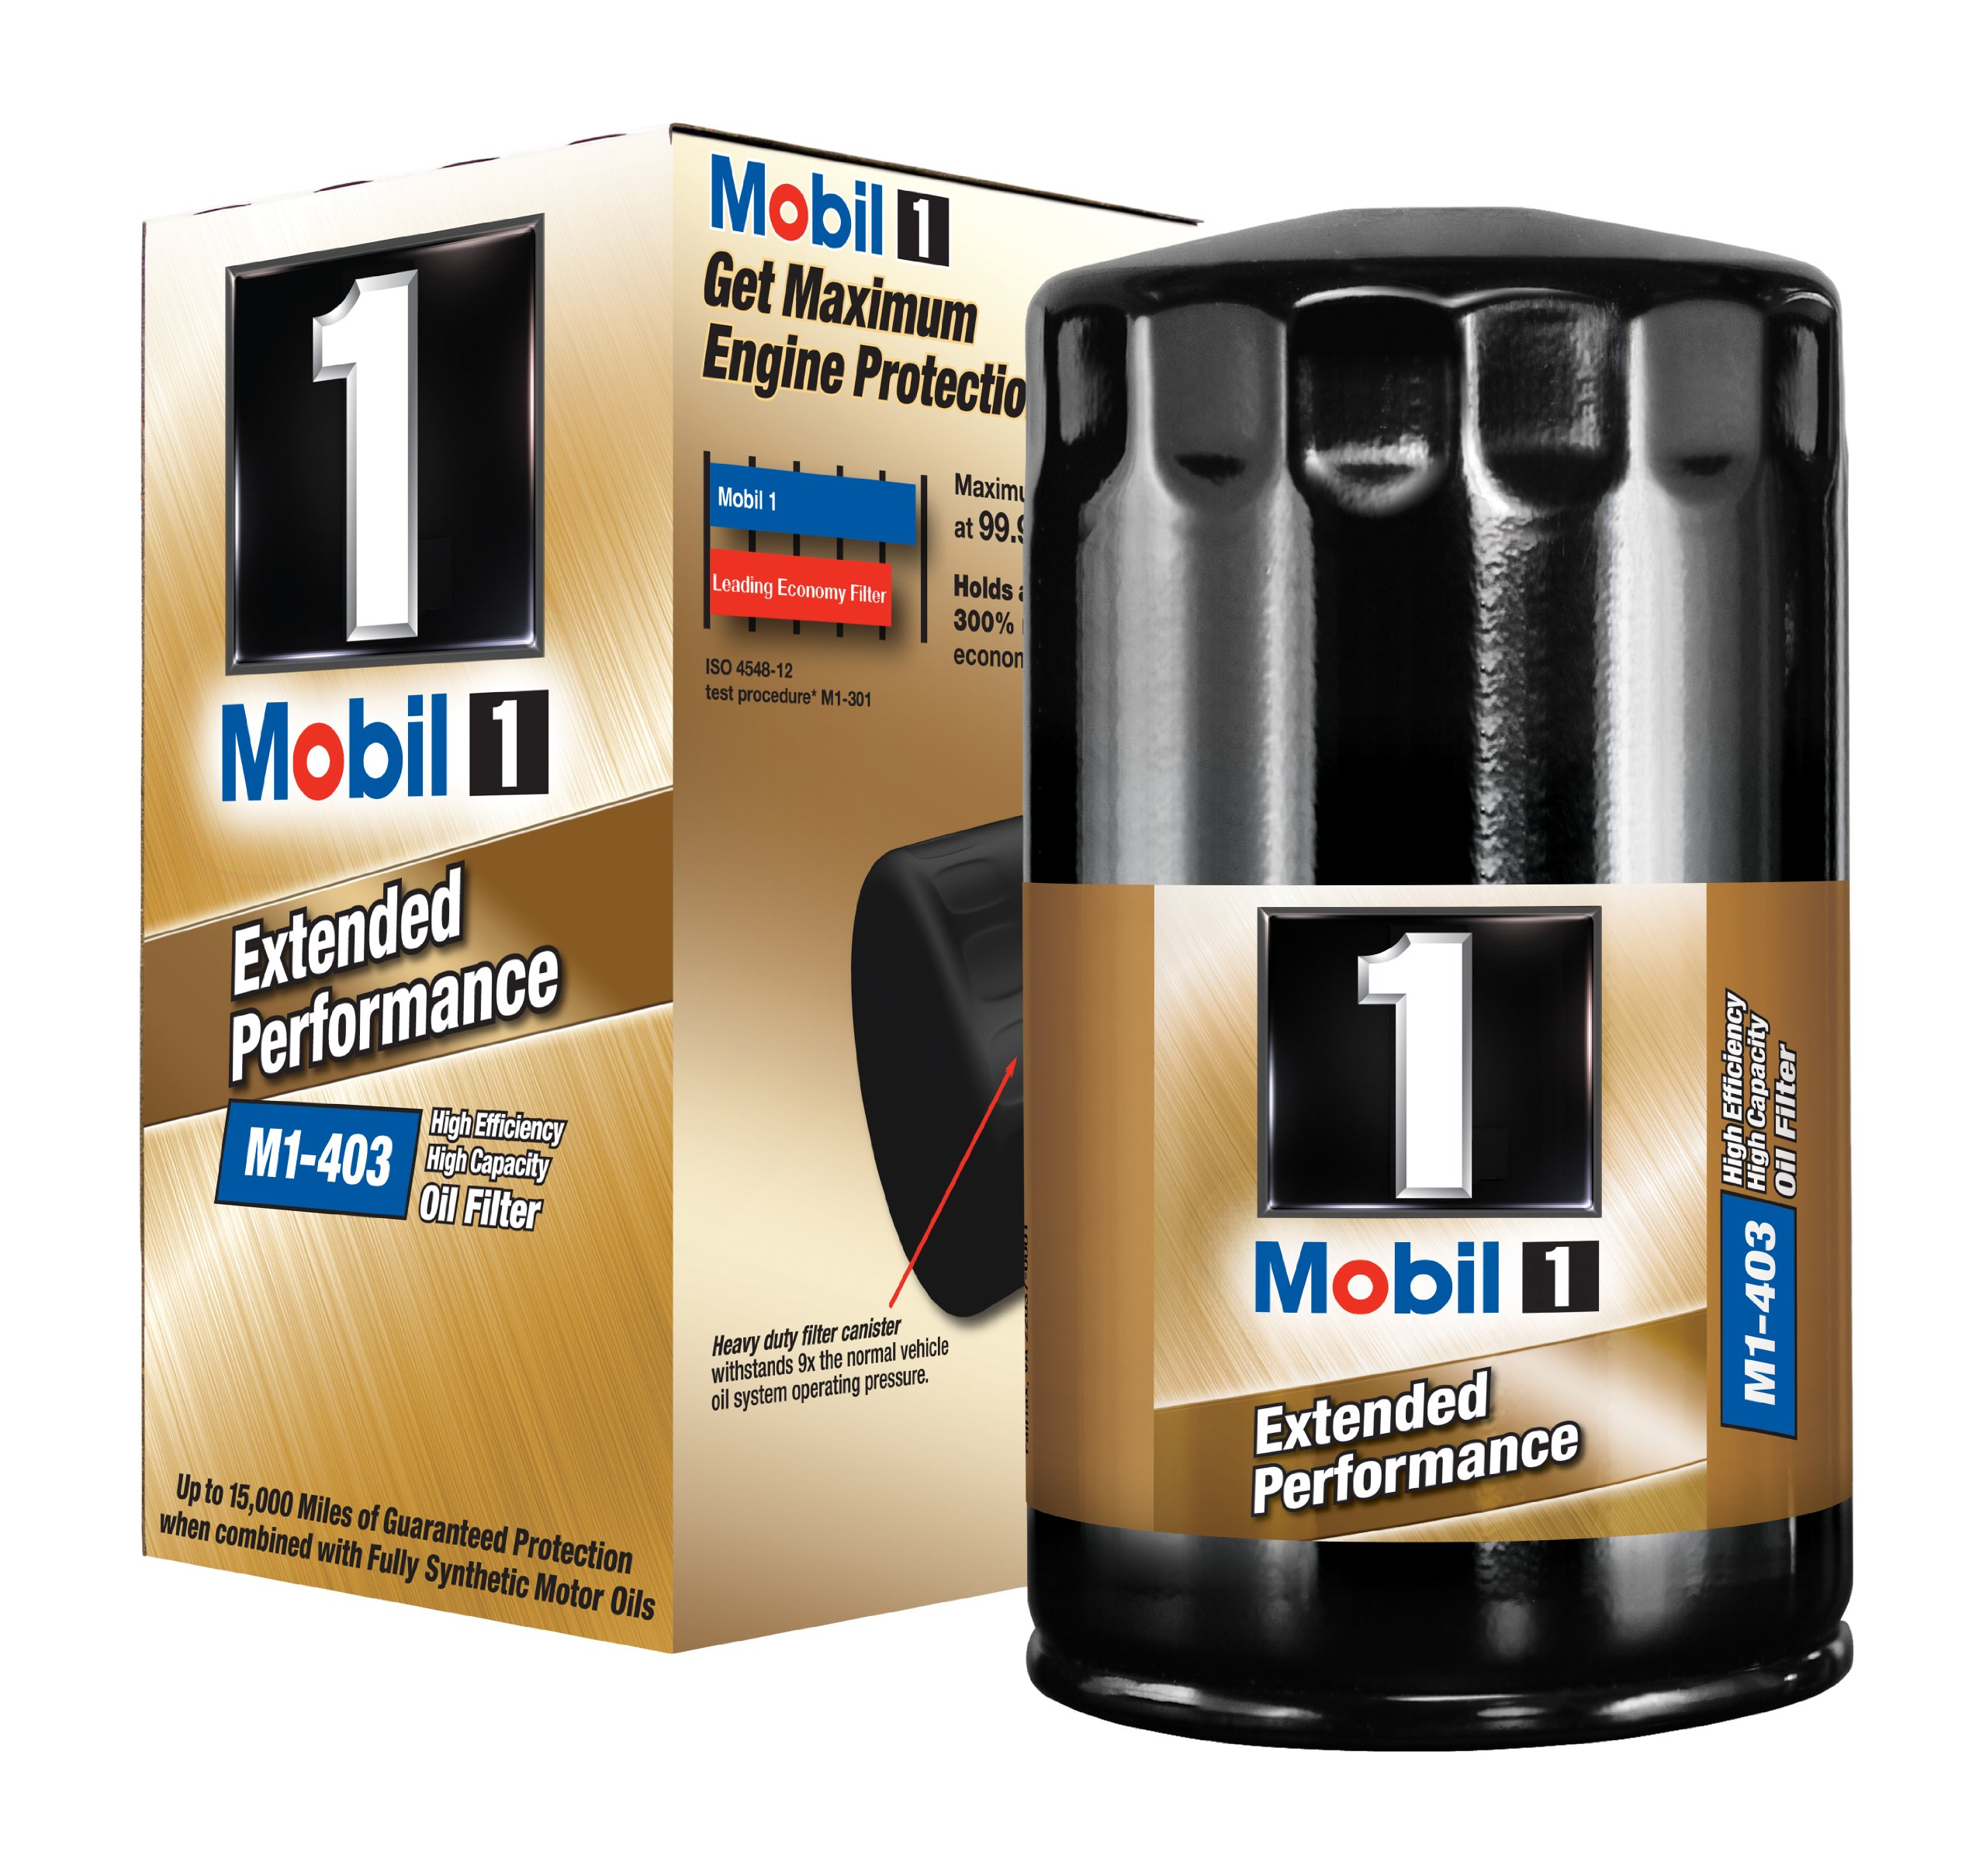 Mobil 1 M1-403 Extended Performance Oil Filter by Mobil 1